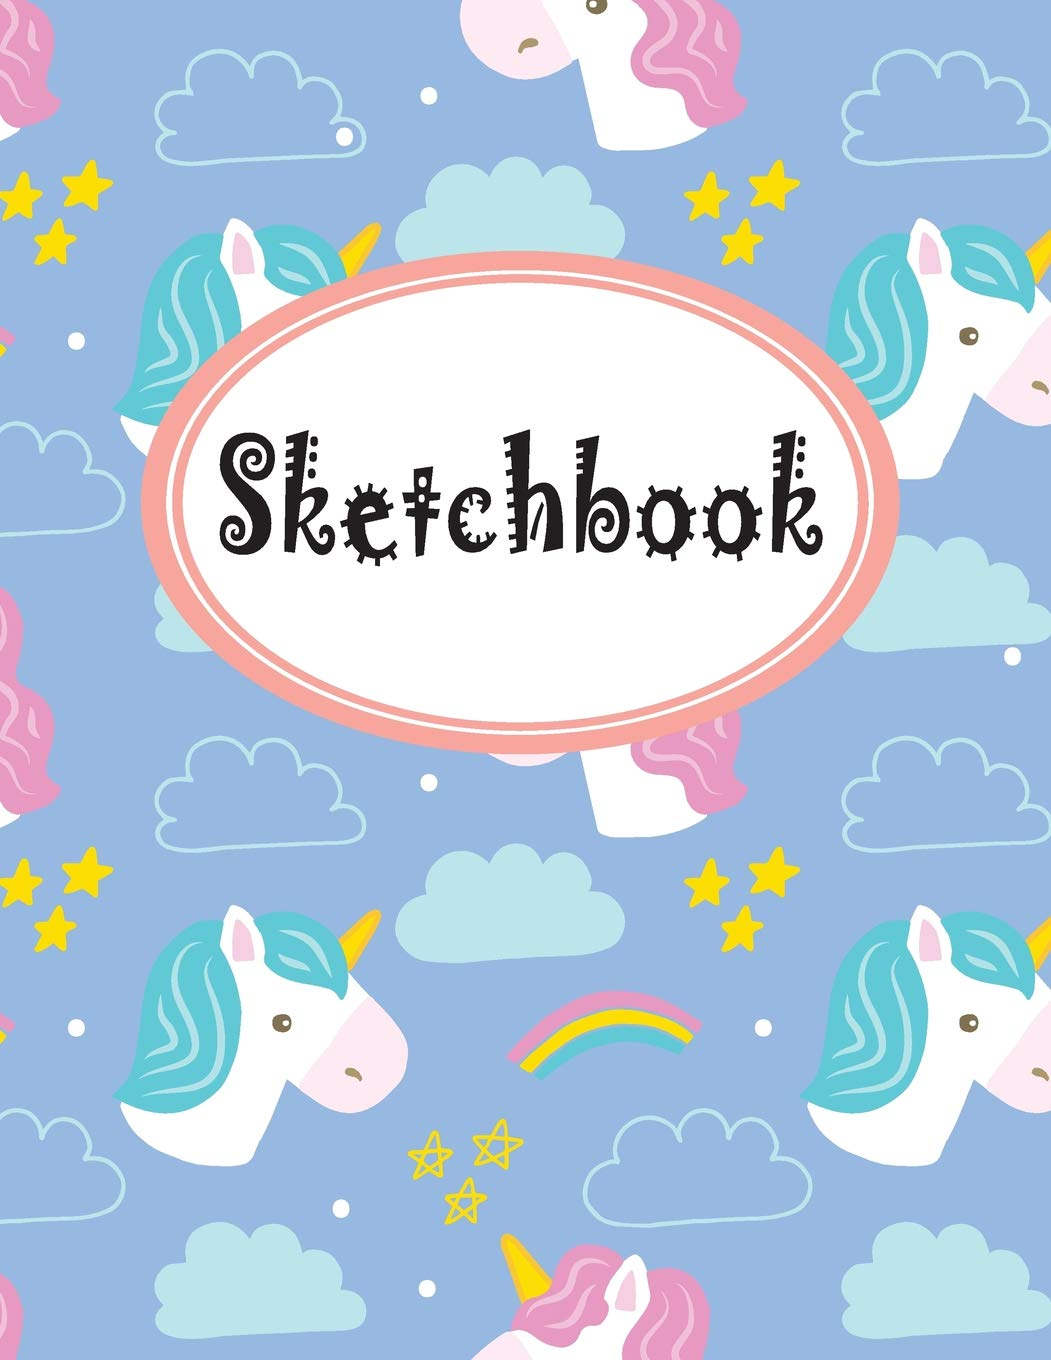 Sketchbook Sketchbook For Girls Cute Unicorn Background Large Blank Sketchbook For Girls For Drawing Sketching Crayon Coloring Kids Drawing Books Volume 12 Unicorn Sketchbook Moore Dorothy 9781797477275 Amazon Com Books